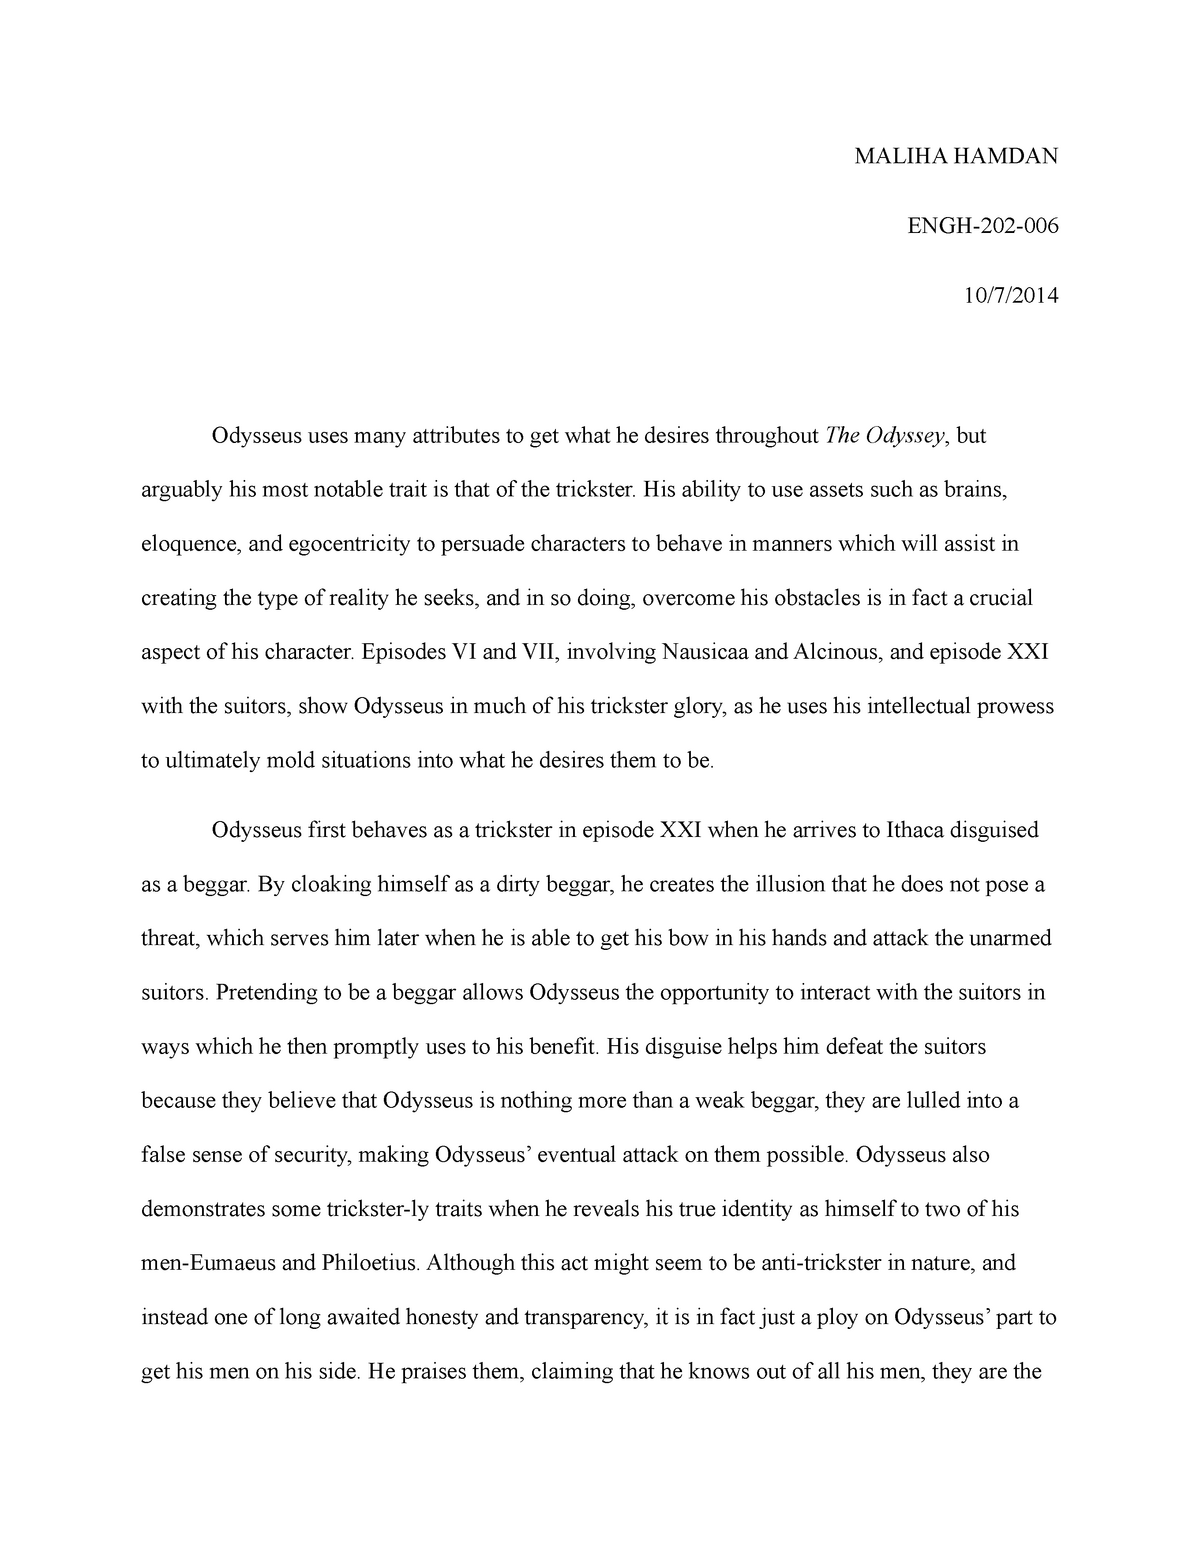 the odyssey 5 paragraph essay